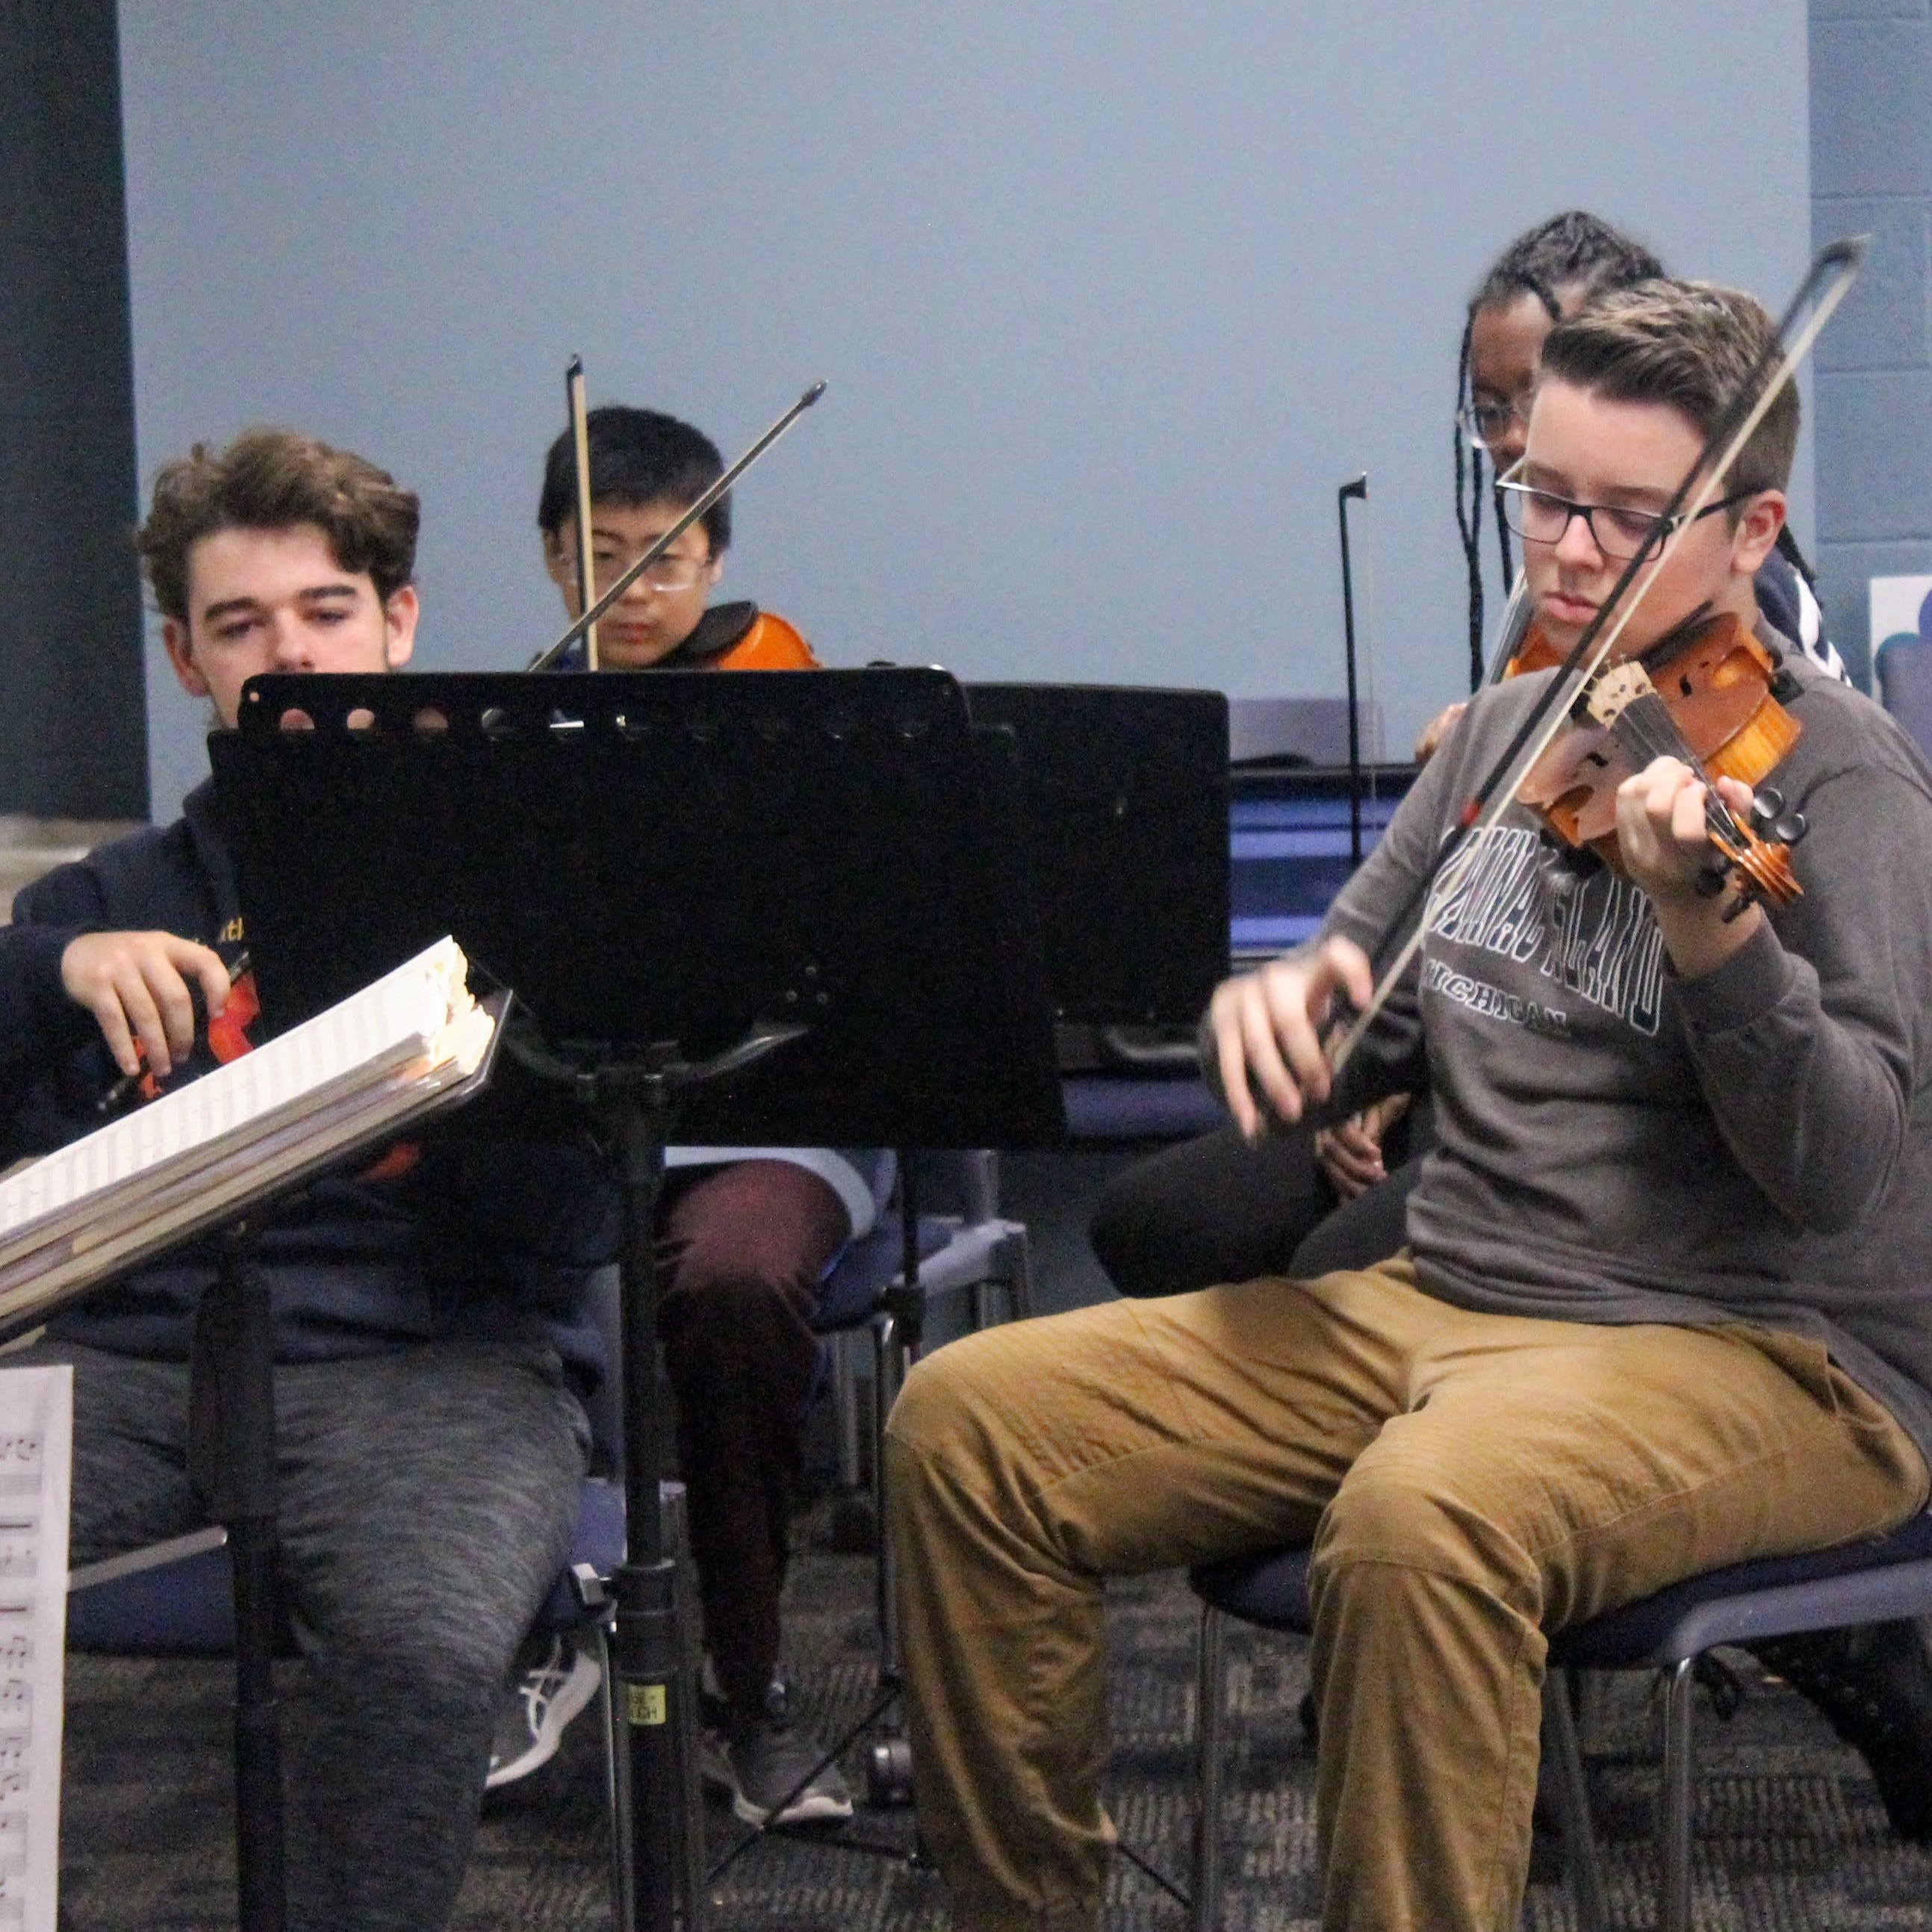 60 years of music flows from the Livonia Youth Symphony Orchestra